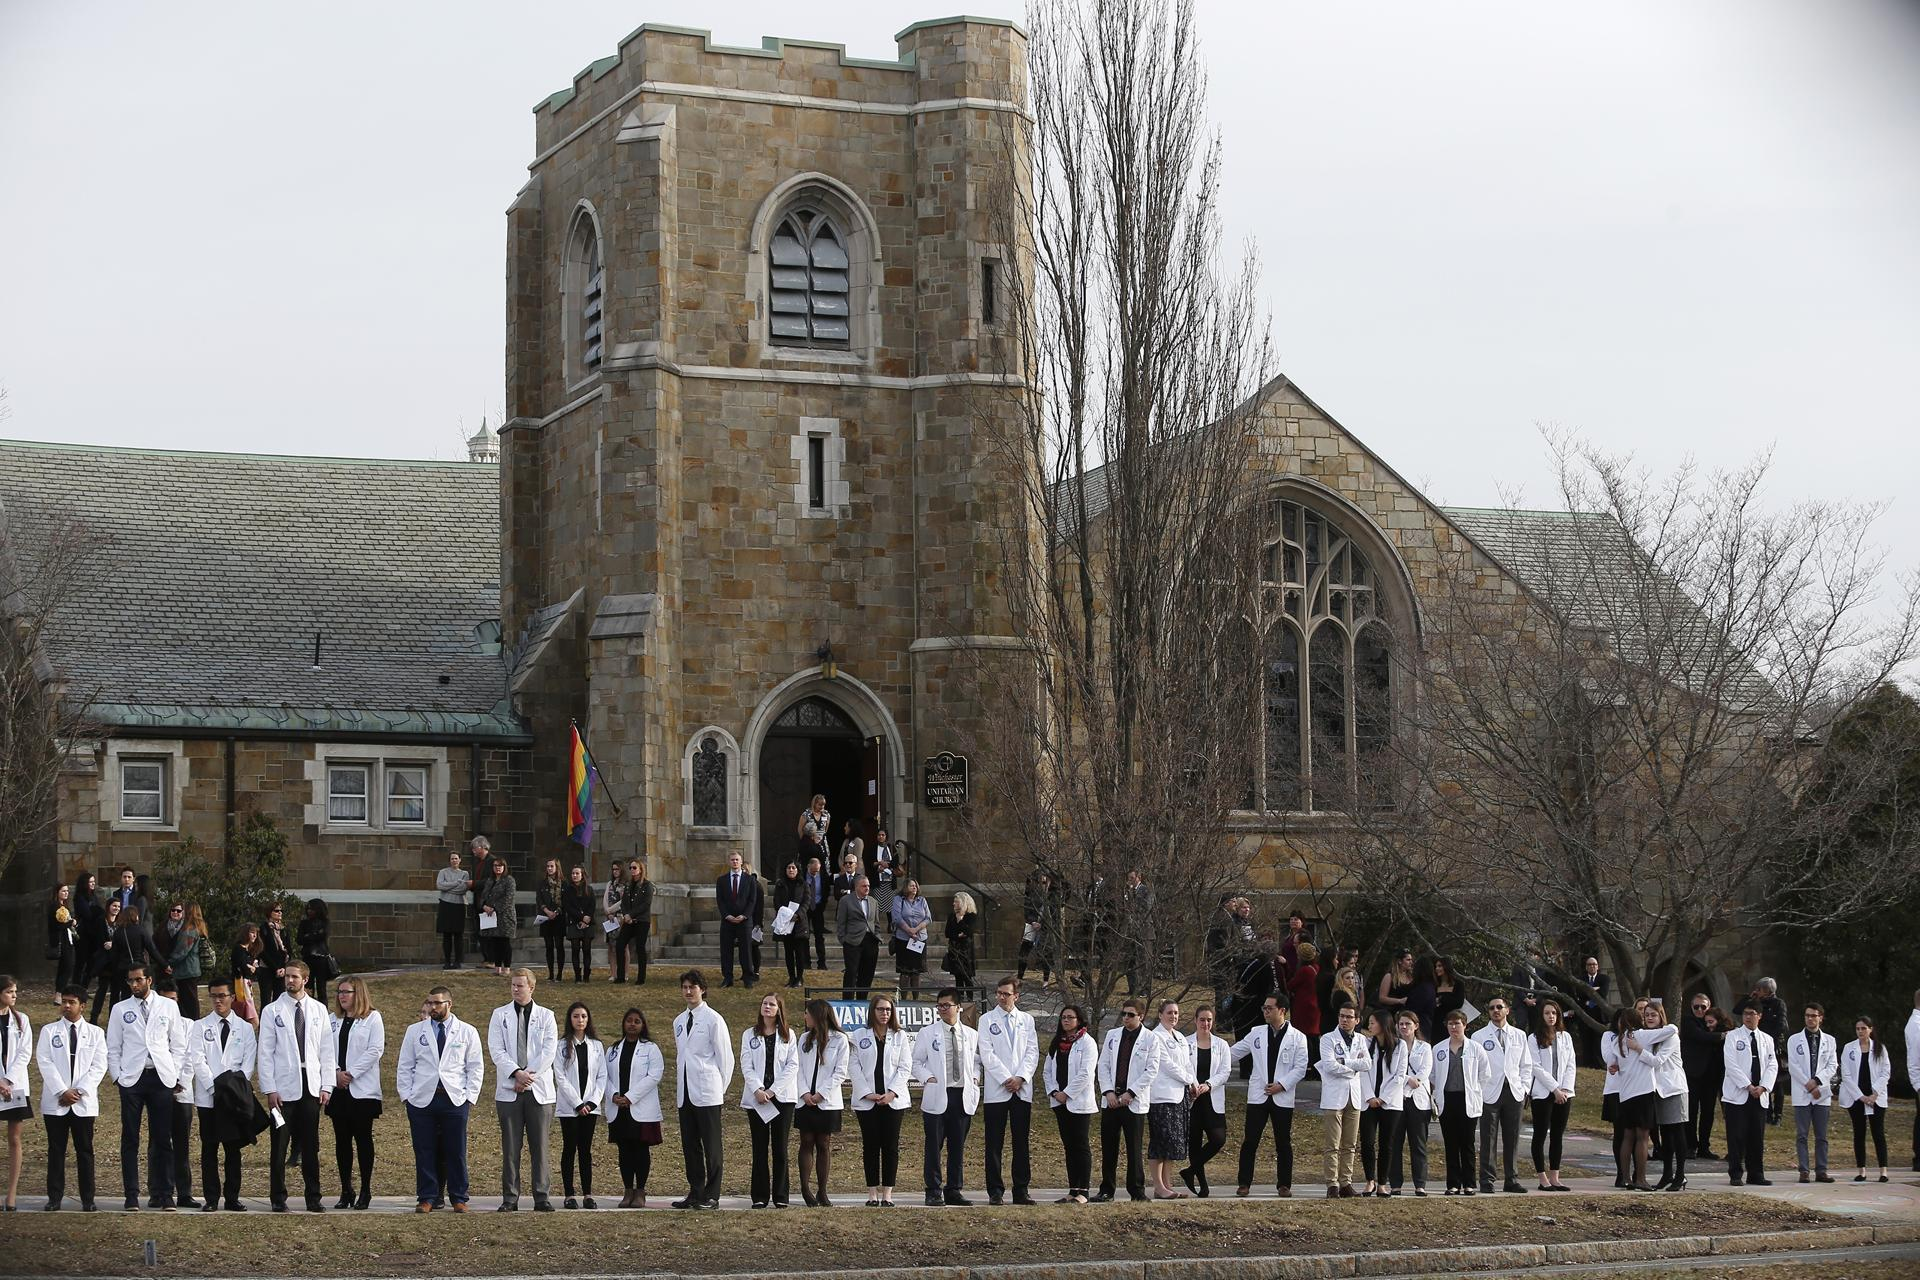 Students from the New England College of Osteopathic Medicine lined the sidewalk outside the Winchester Unitarian Society Thursday.